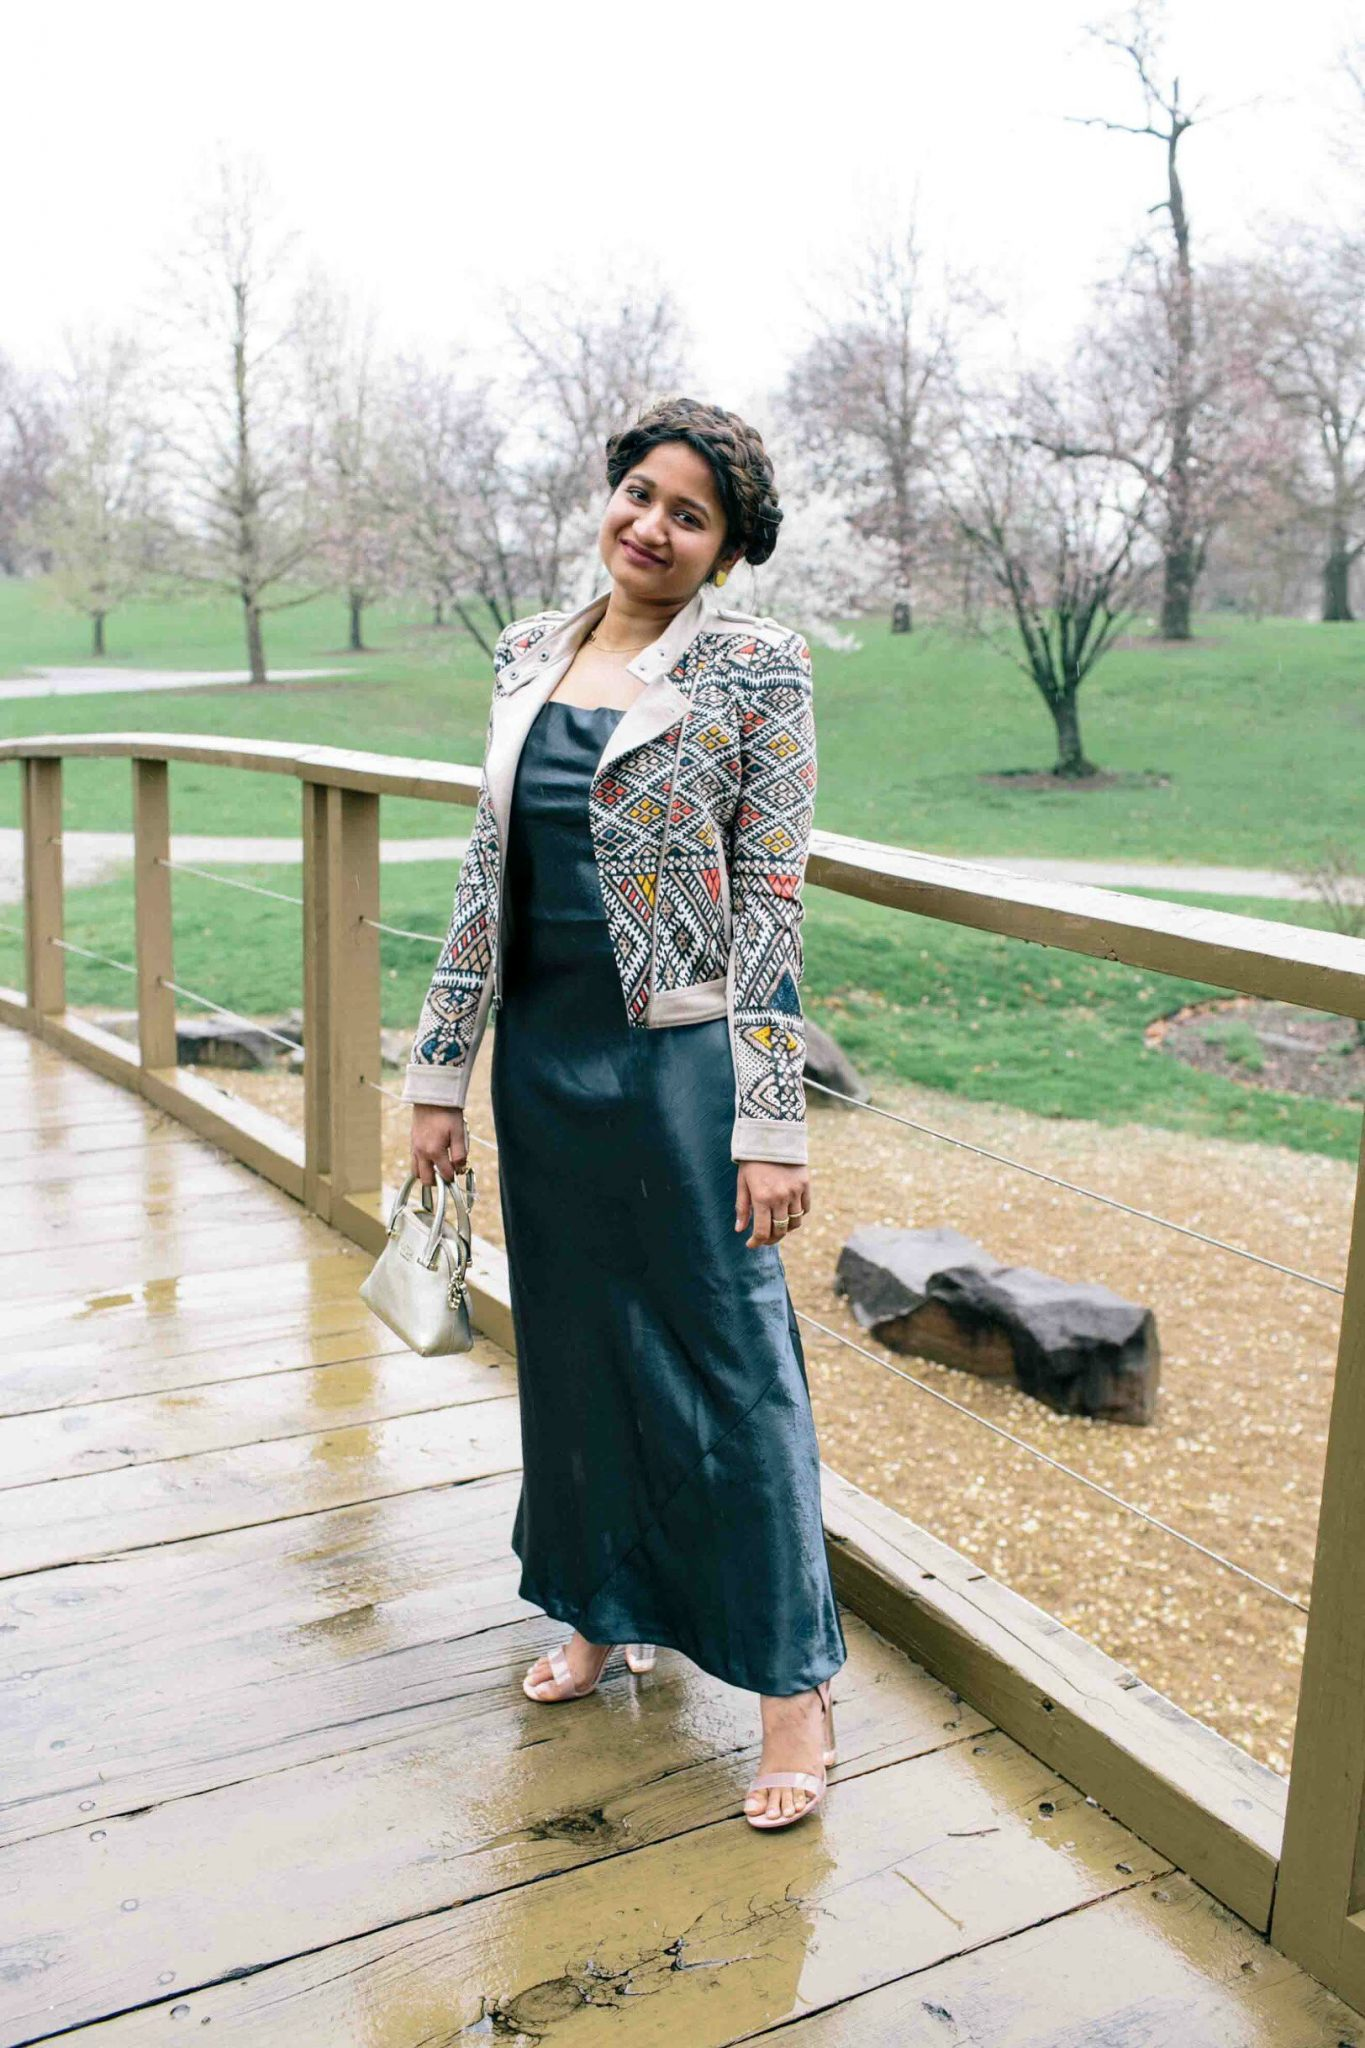 Modest Fashion and Lifestyle Blog dreaming loud wearing Call it spring OCALIDE in pink 2 - How to Start a blog by popular Ohio blogger, Dreaming Loud